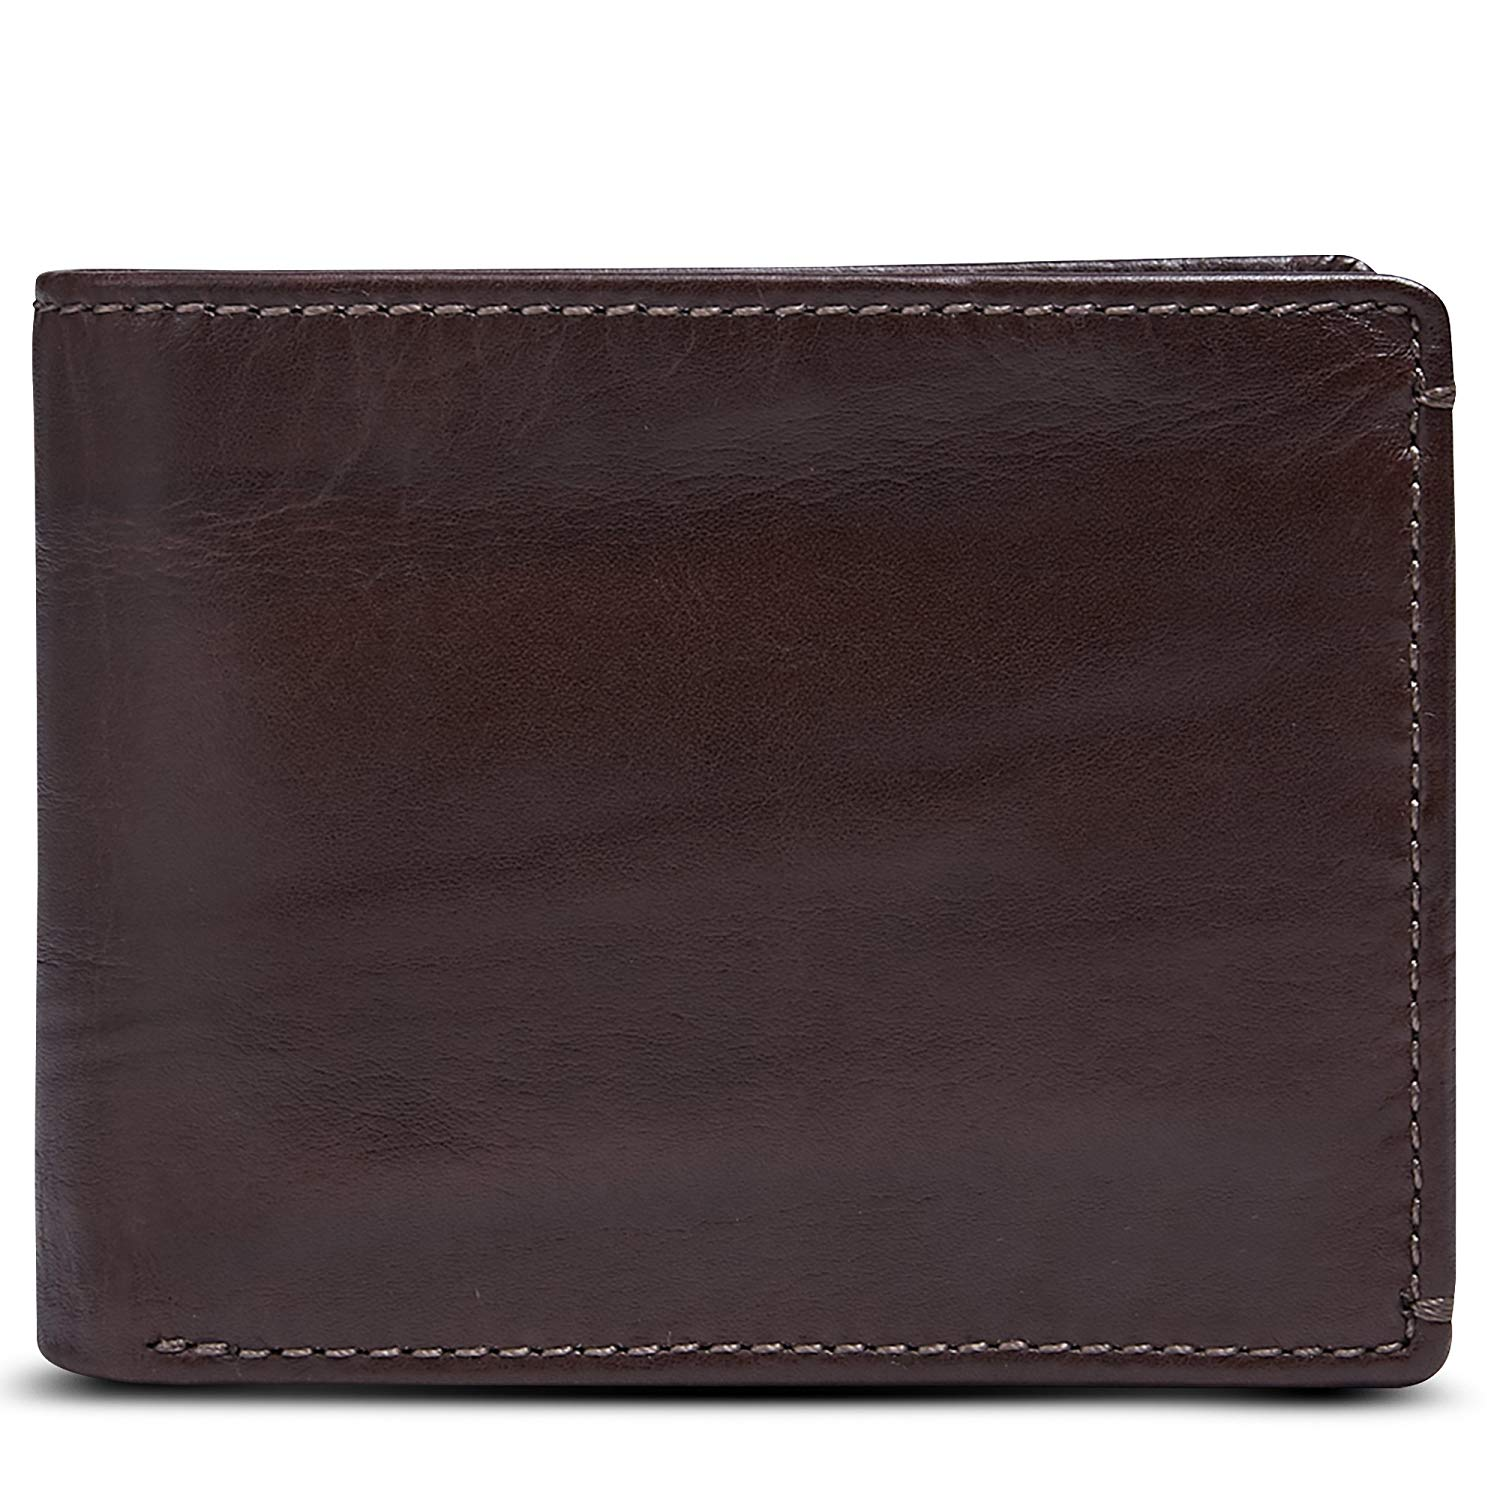 HOJ Co. Jack Double ID Bifold Wallet-Full Grain Leather-Hand Burnished Finish-Men's Leather Bifold Wallet